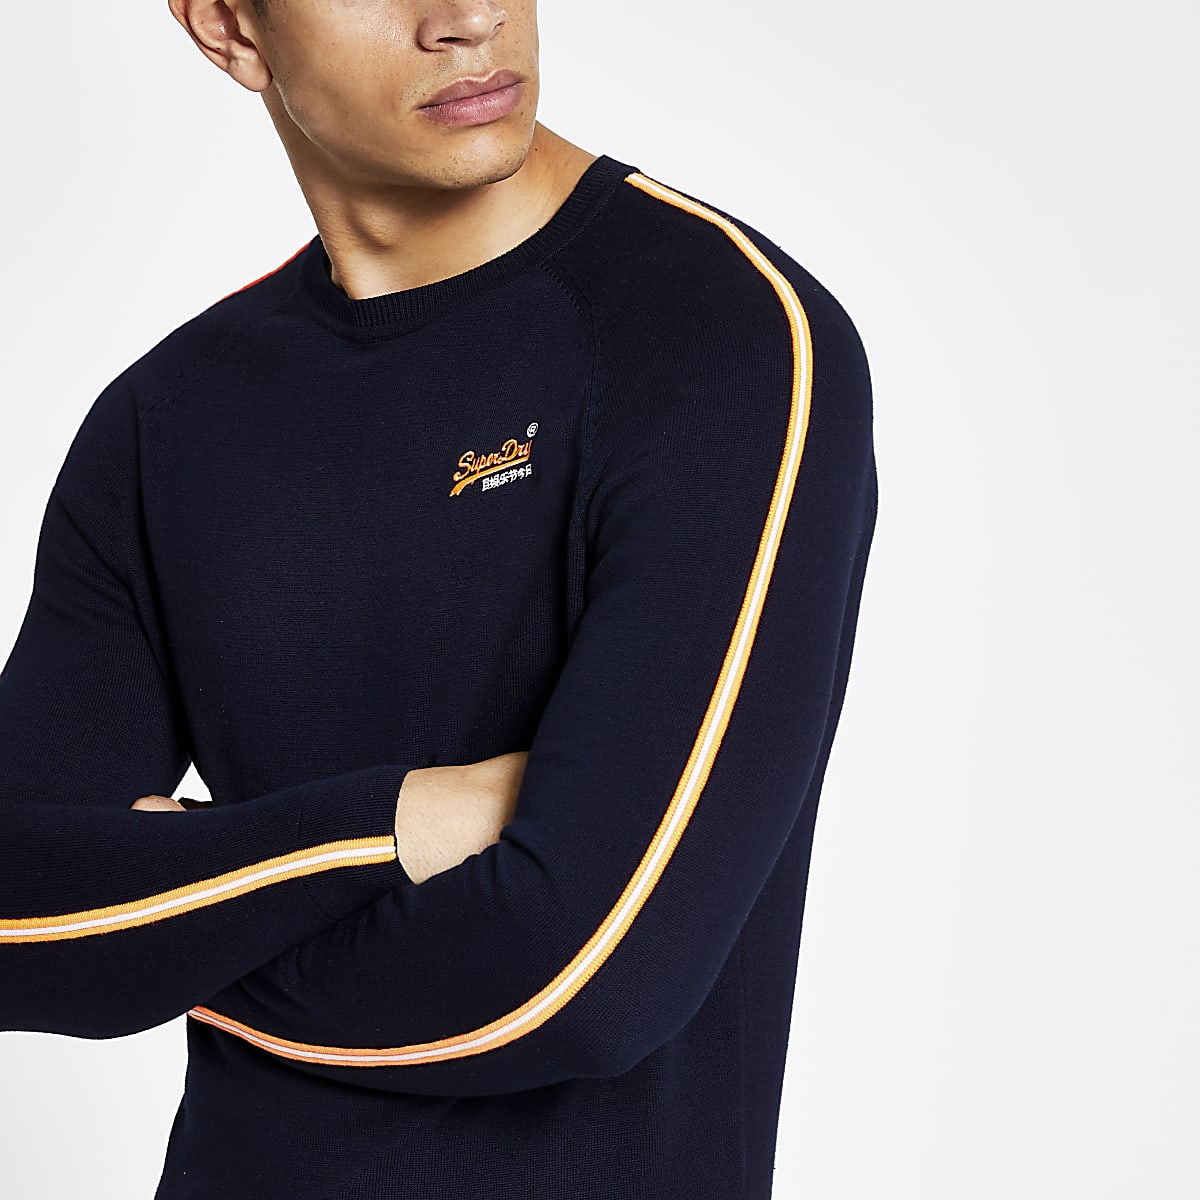 Superdry navy tape sleeve sweatshirt